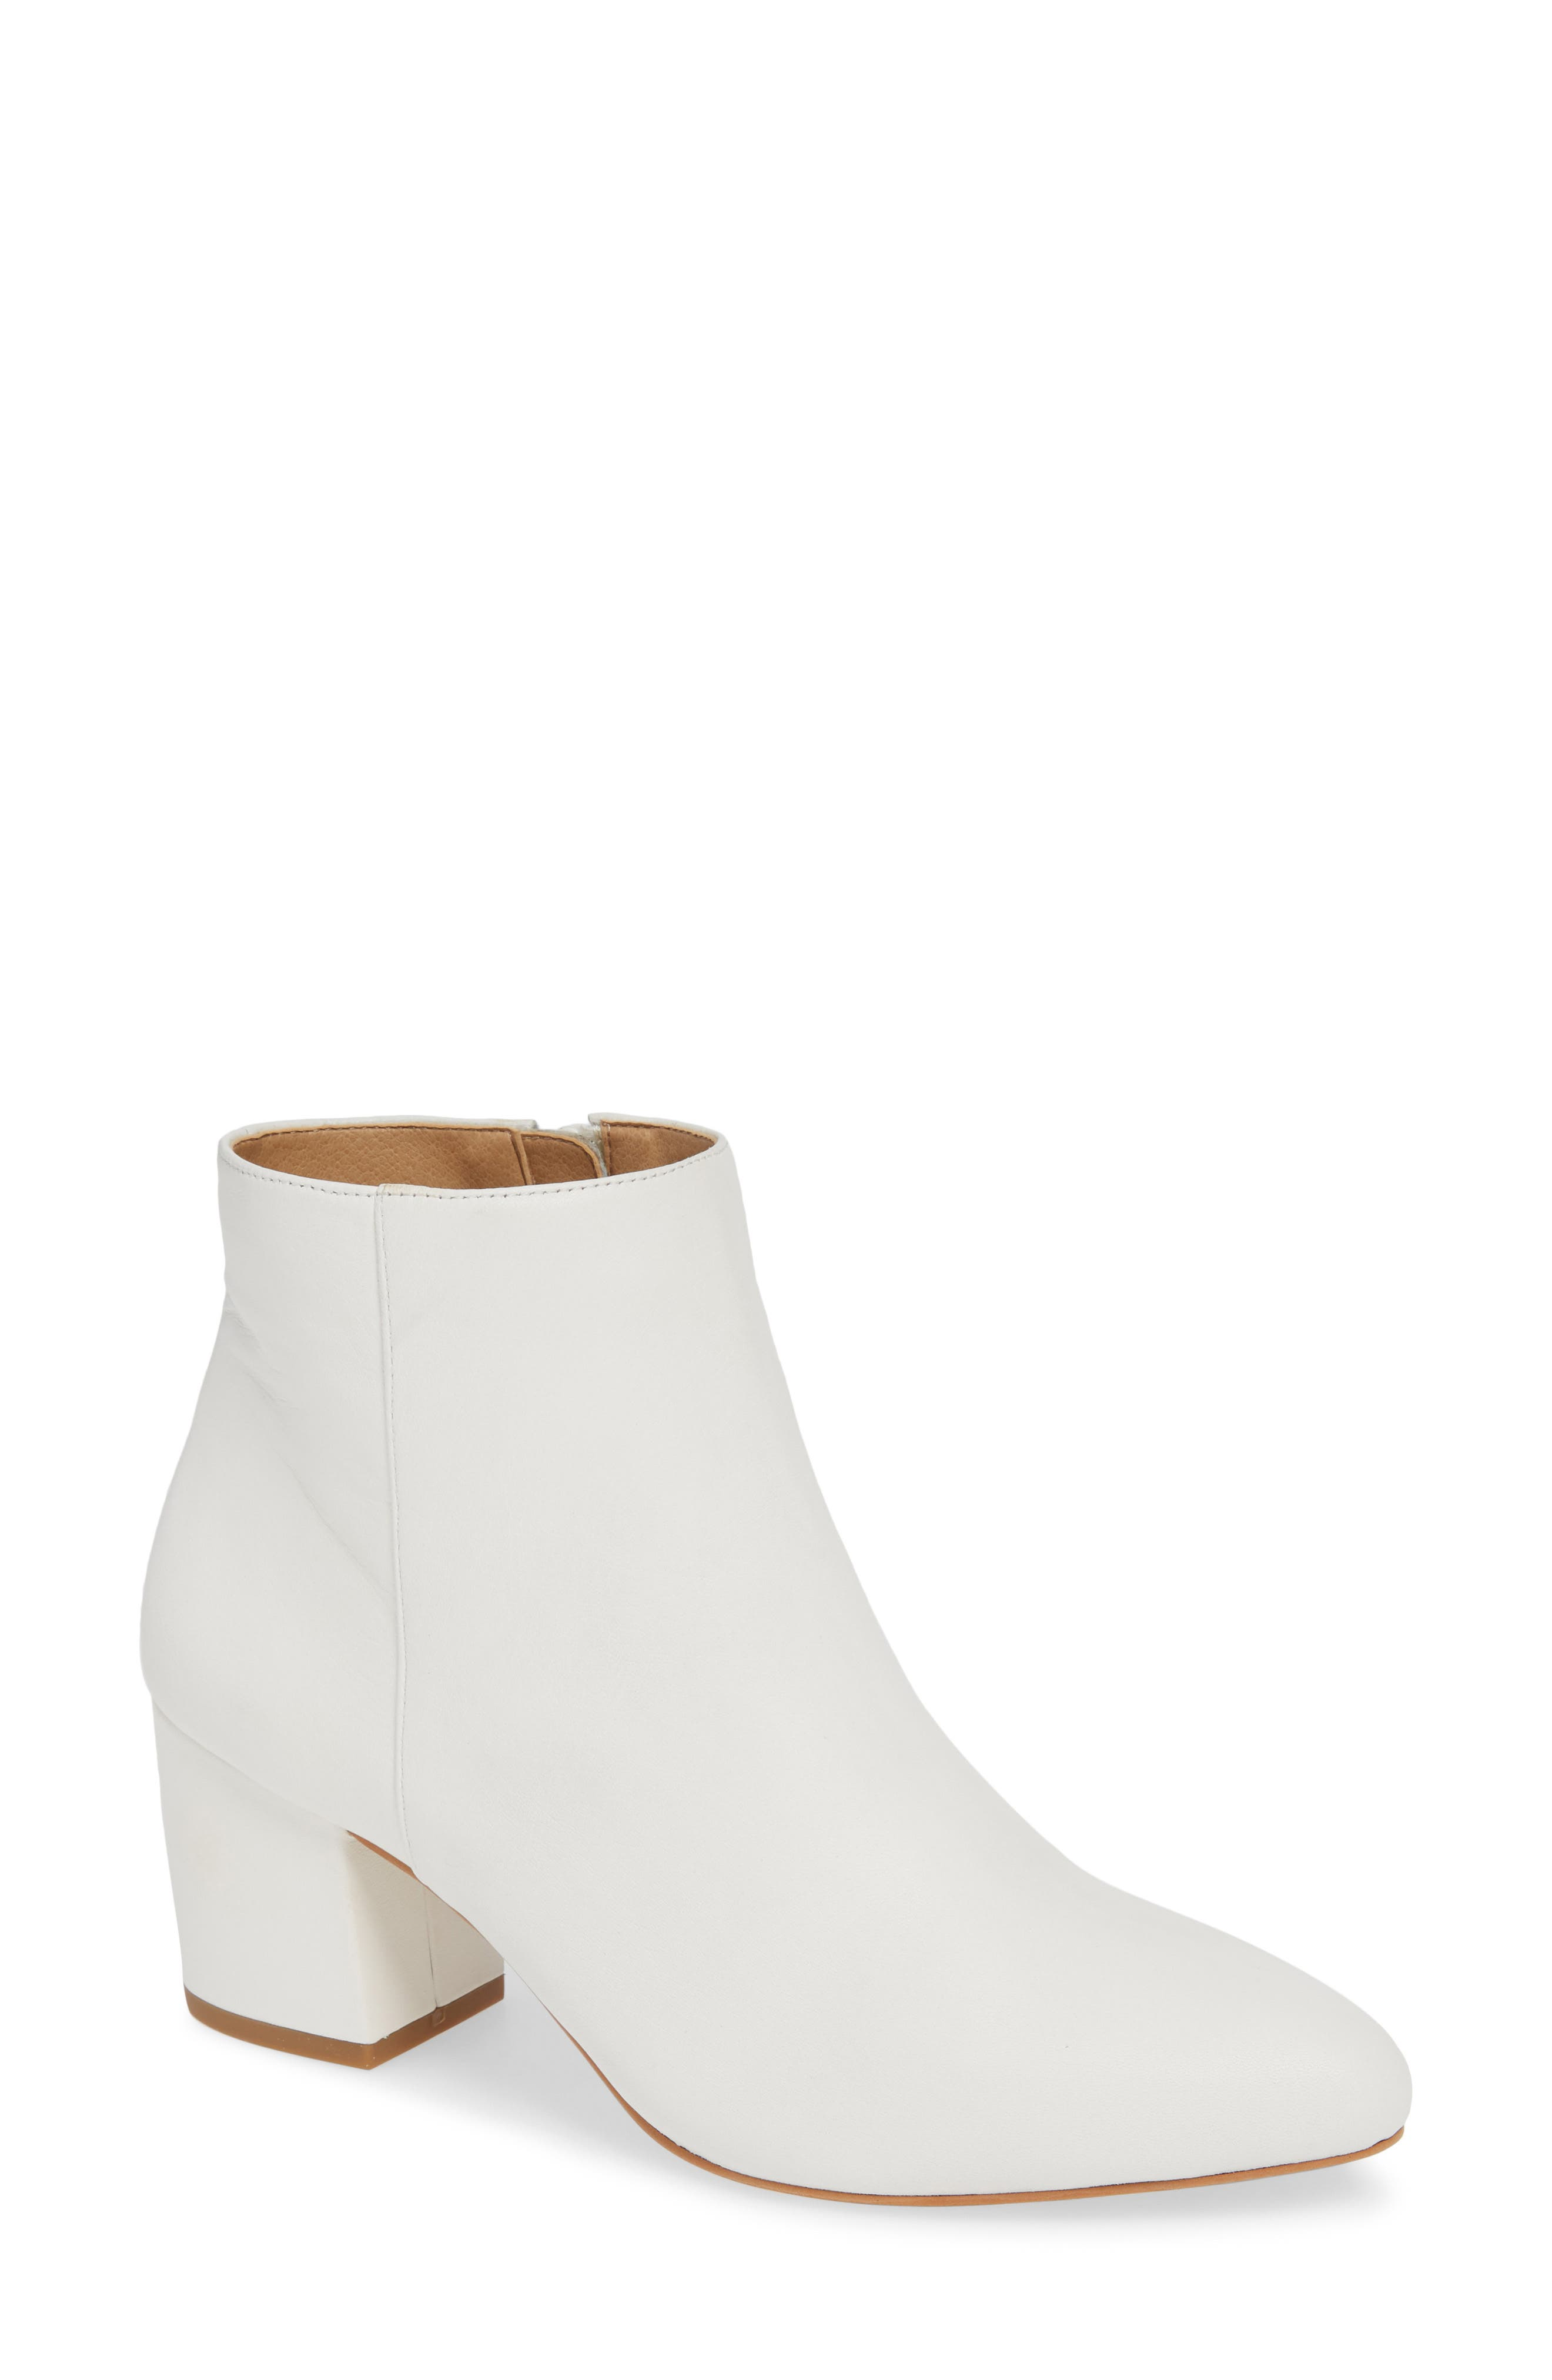 NIC+ZOE, Amorie Bootie, Main thumbnail 1, color, WHITE LEATHER